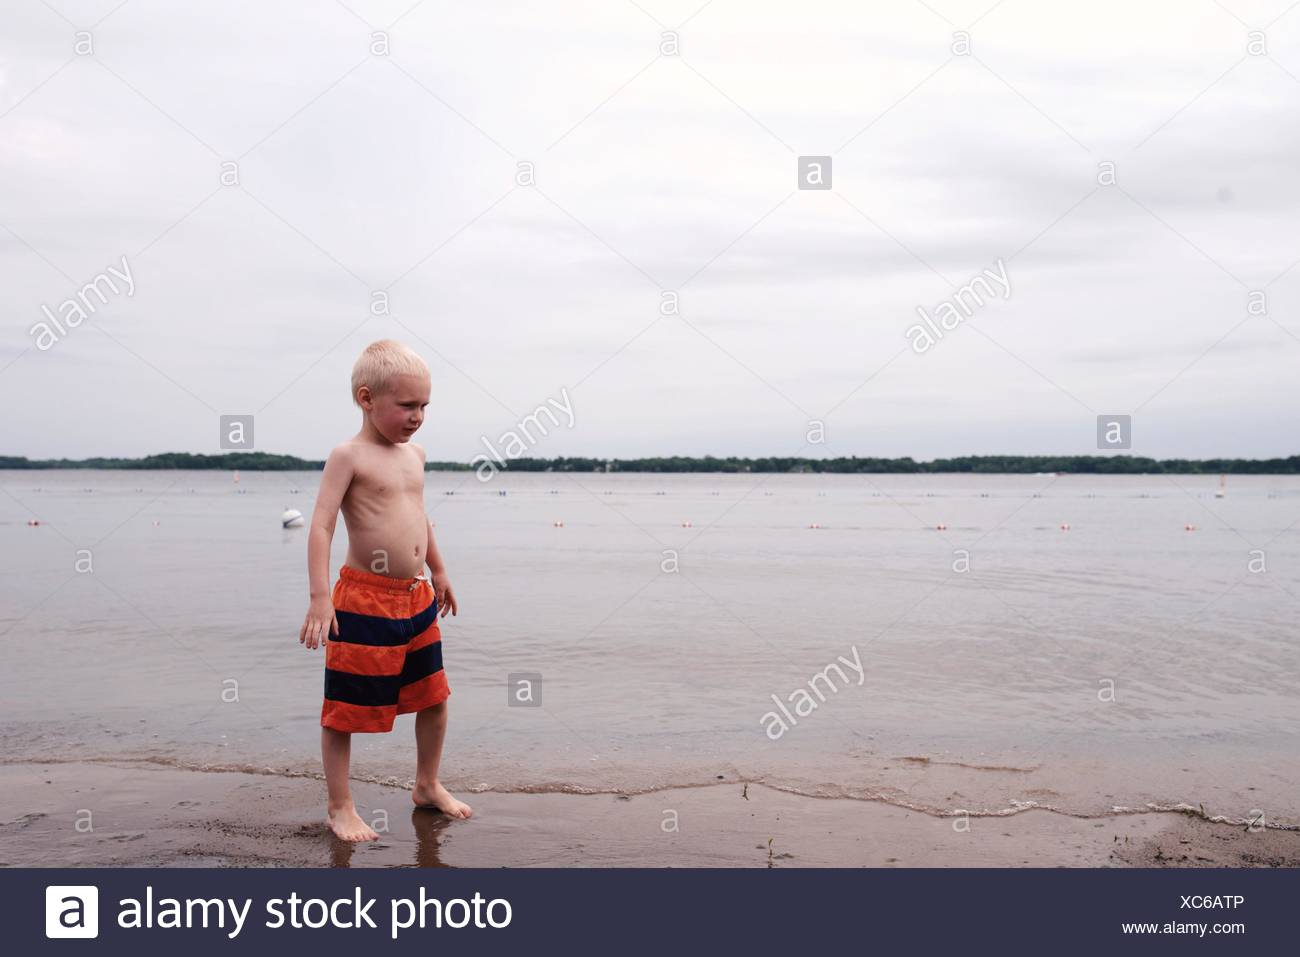 Boy Standing On Sea Shore Against Sky - Stock Image